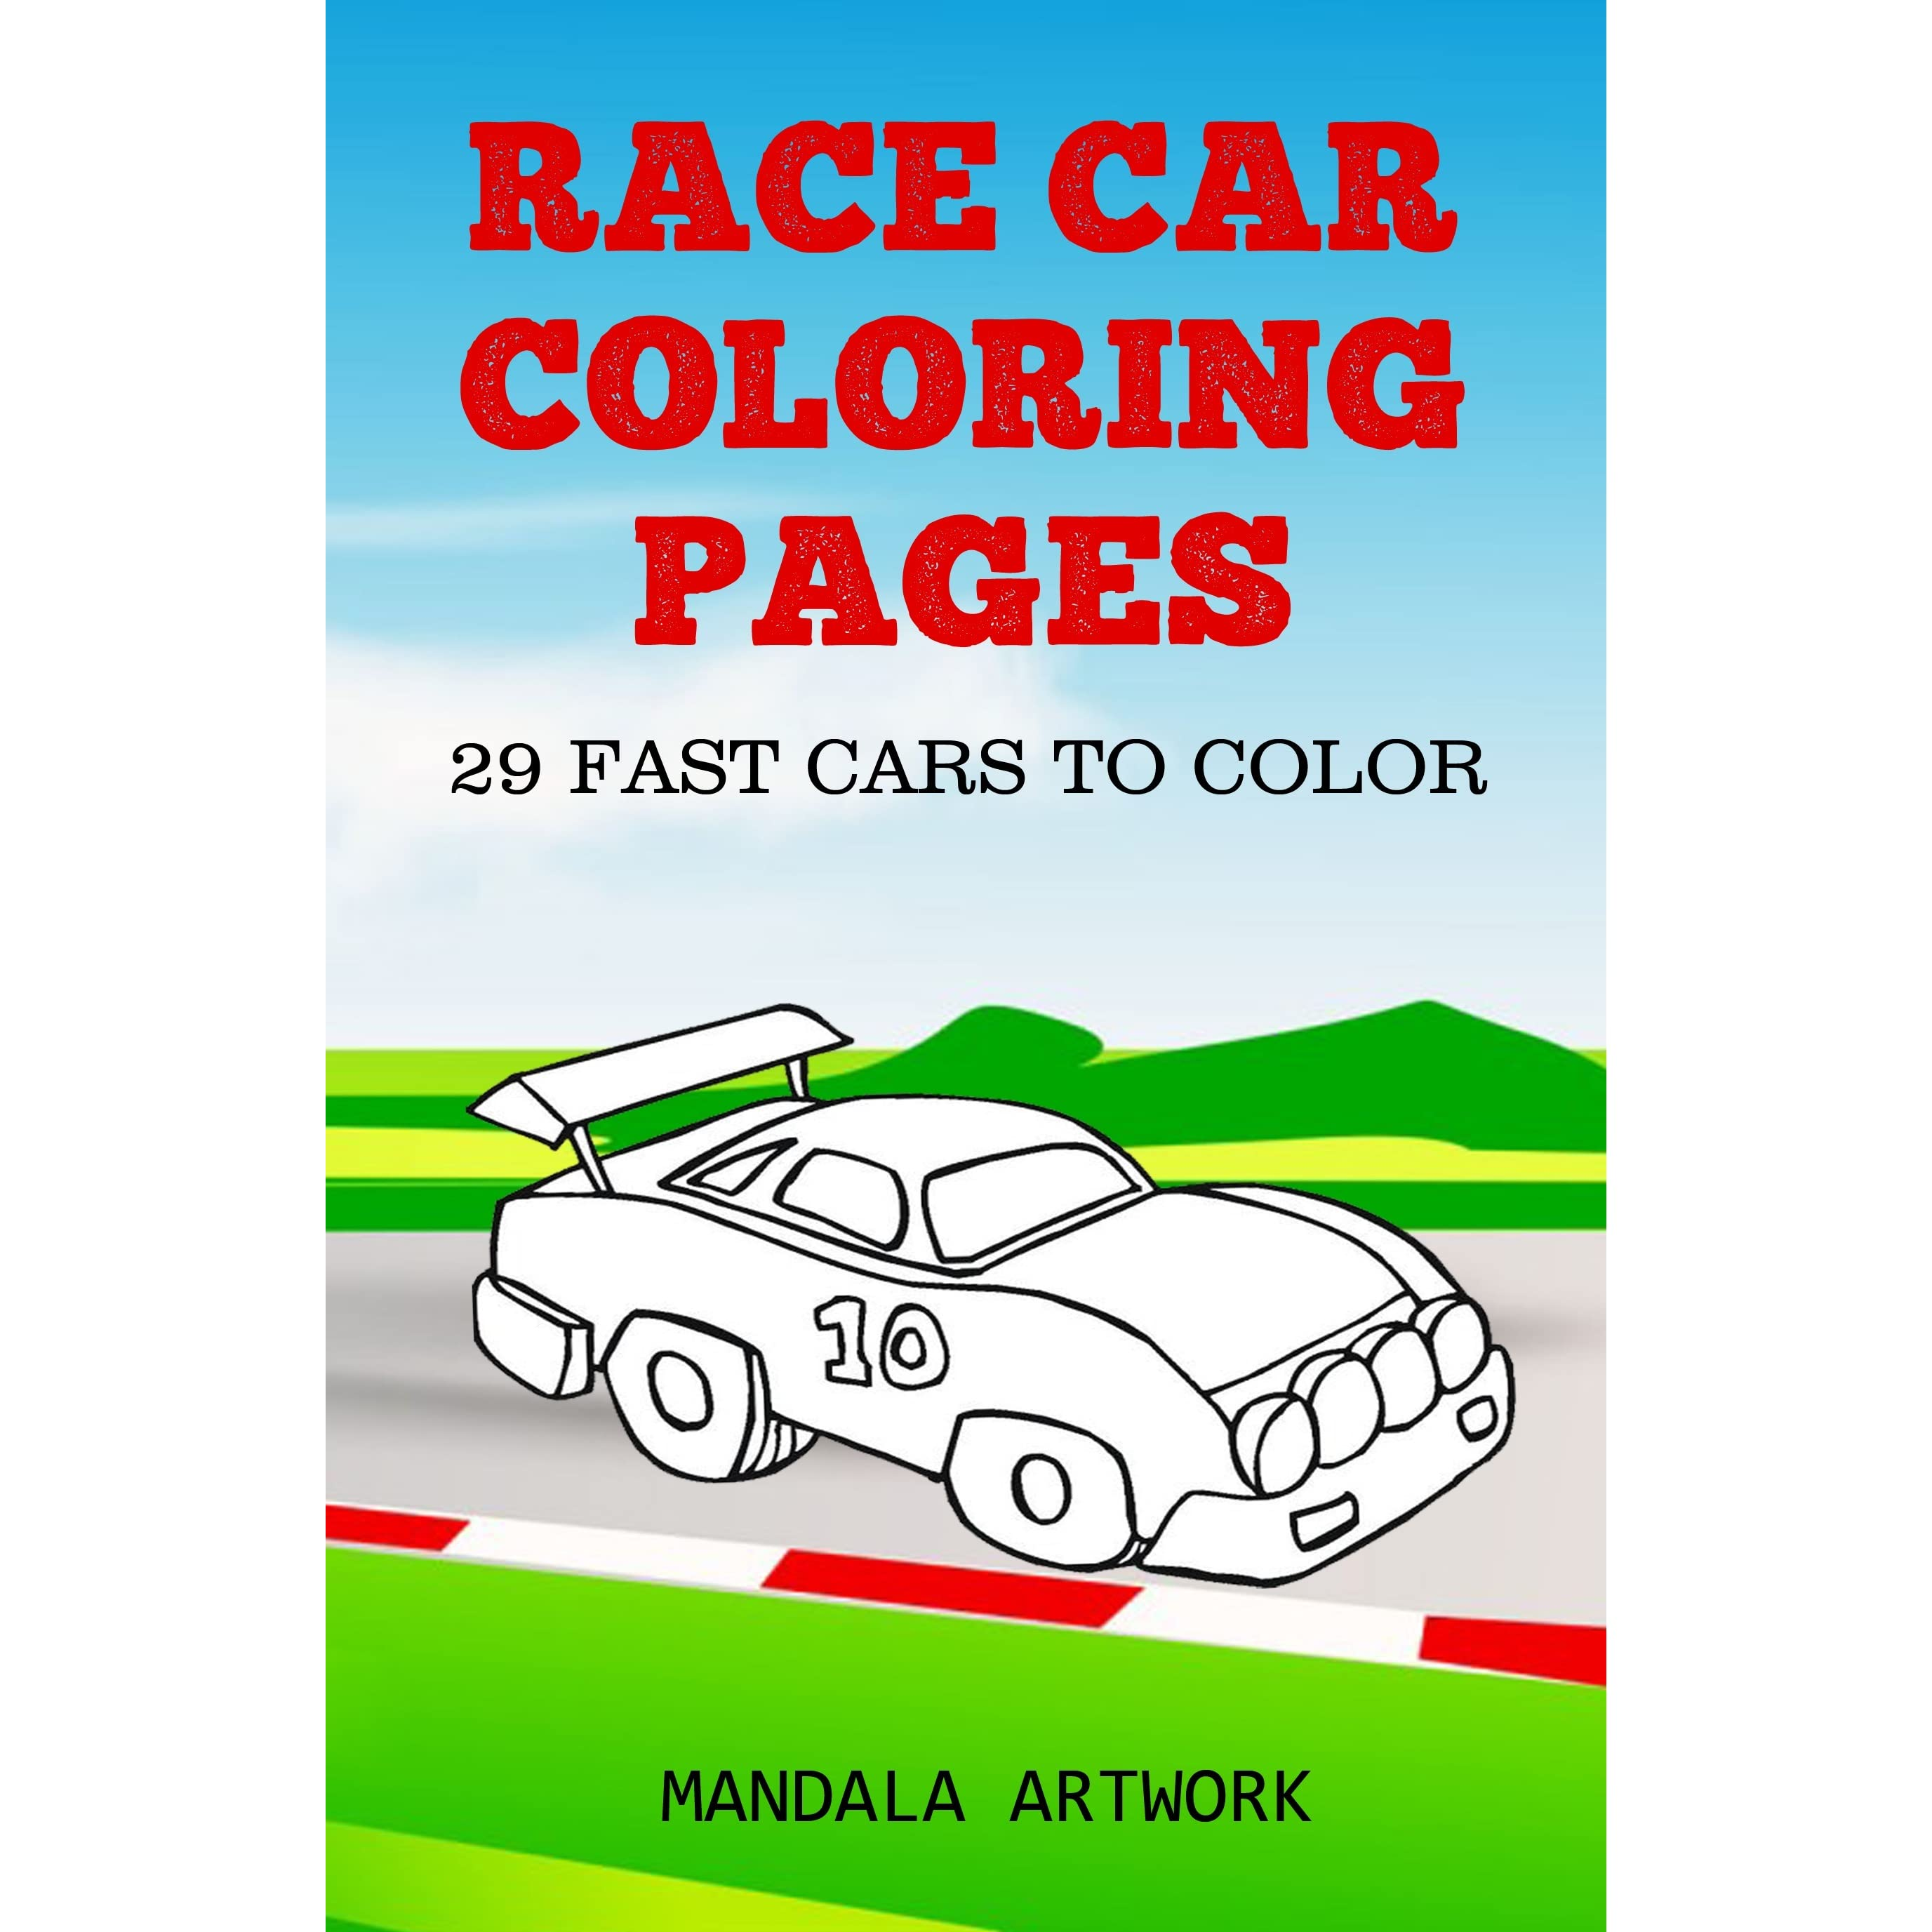 Race Car Coloring Pages 29 Fast Cars To Color By Mandala Artwork